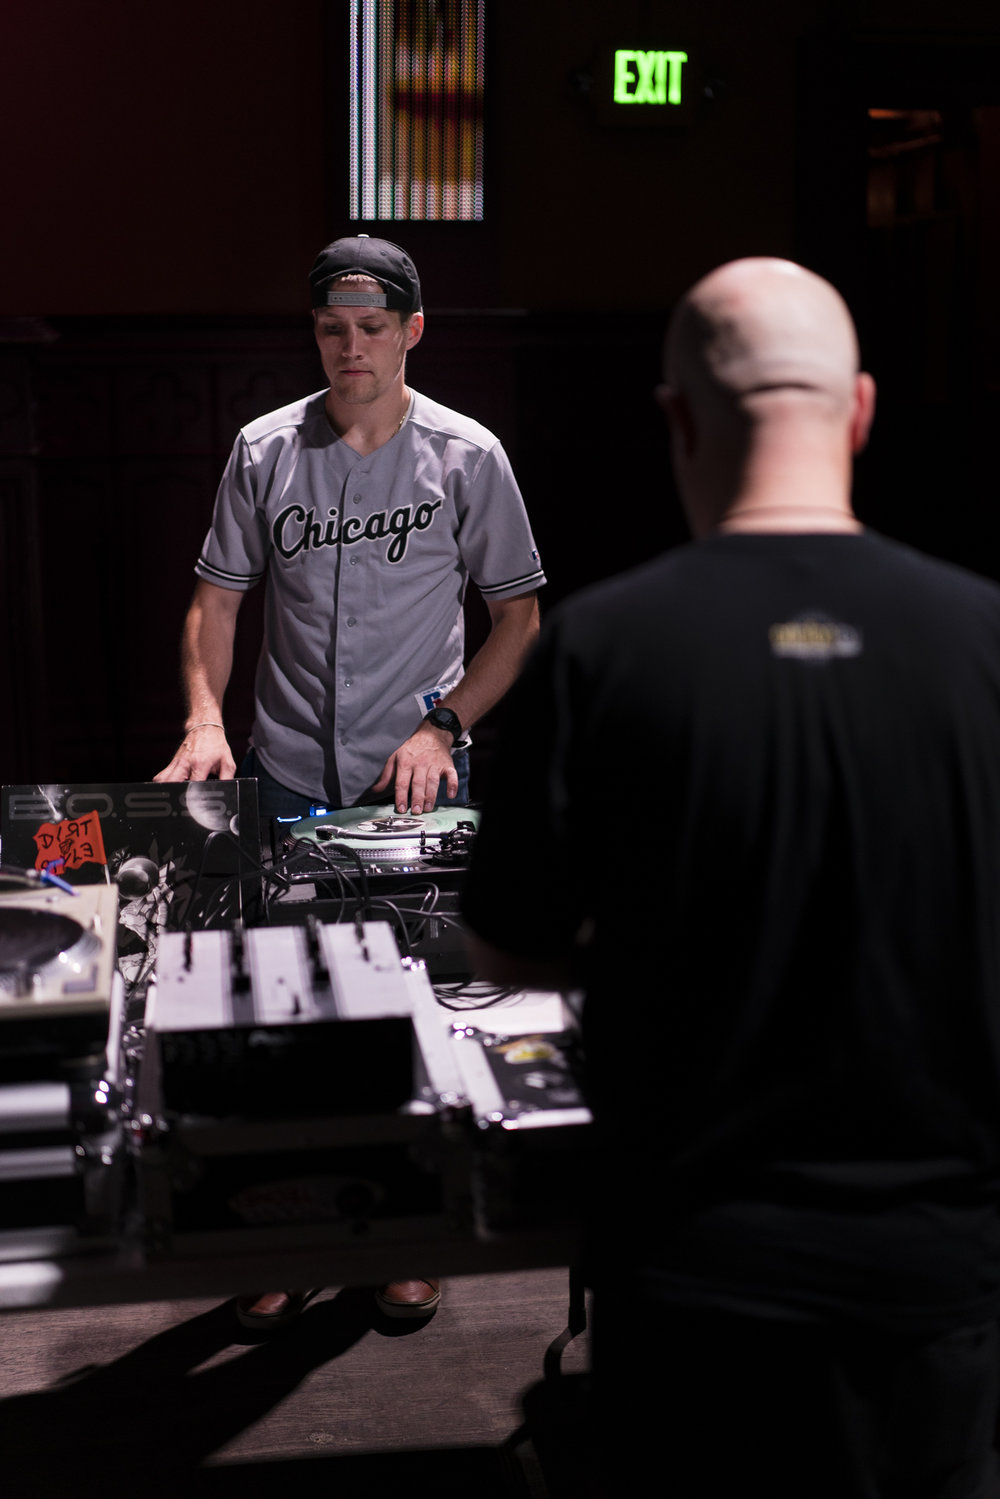 2018_07_05_2018_07_05_Skratch Lounge_0015_Export.jpg